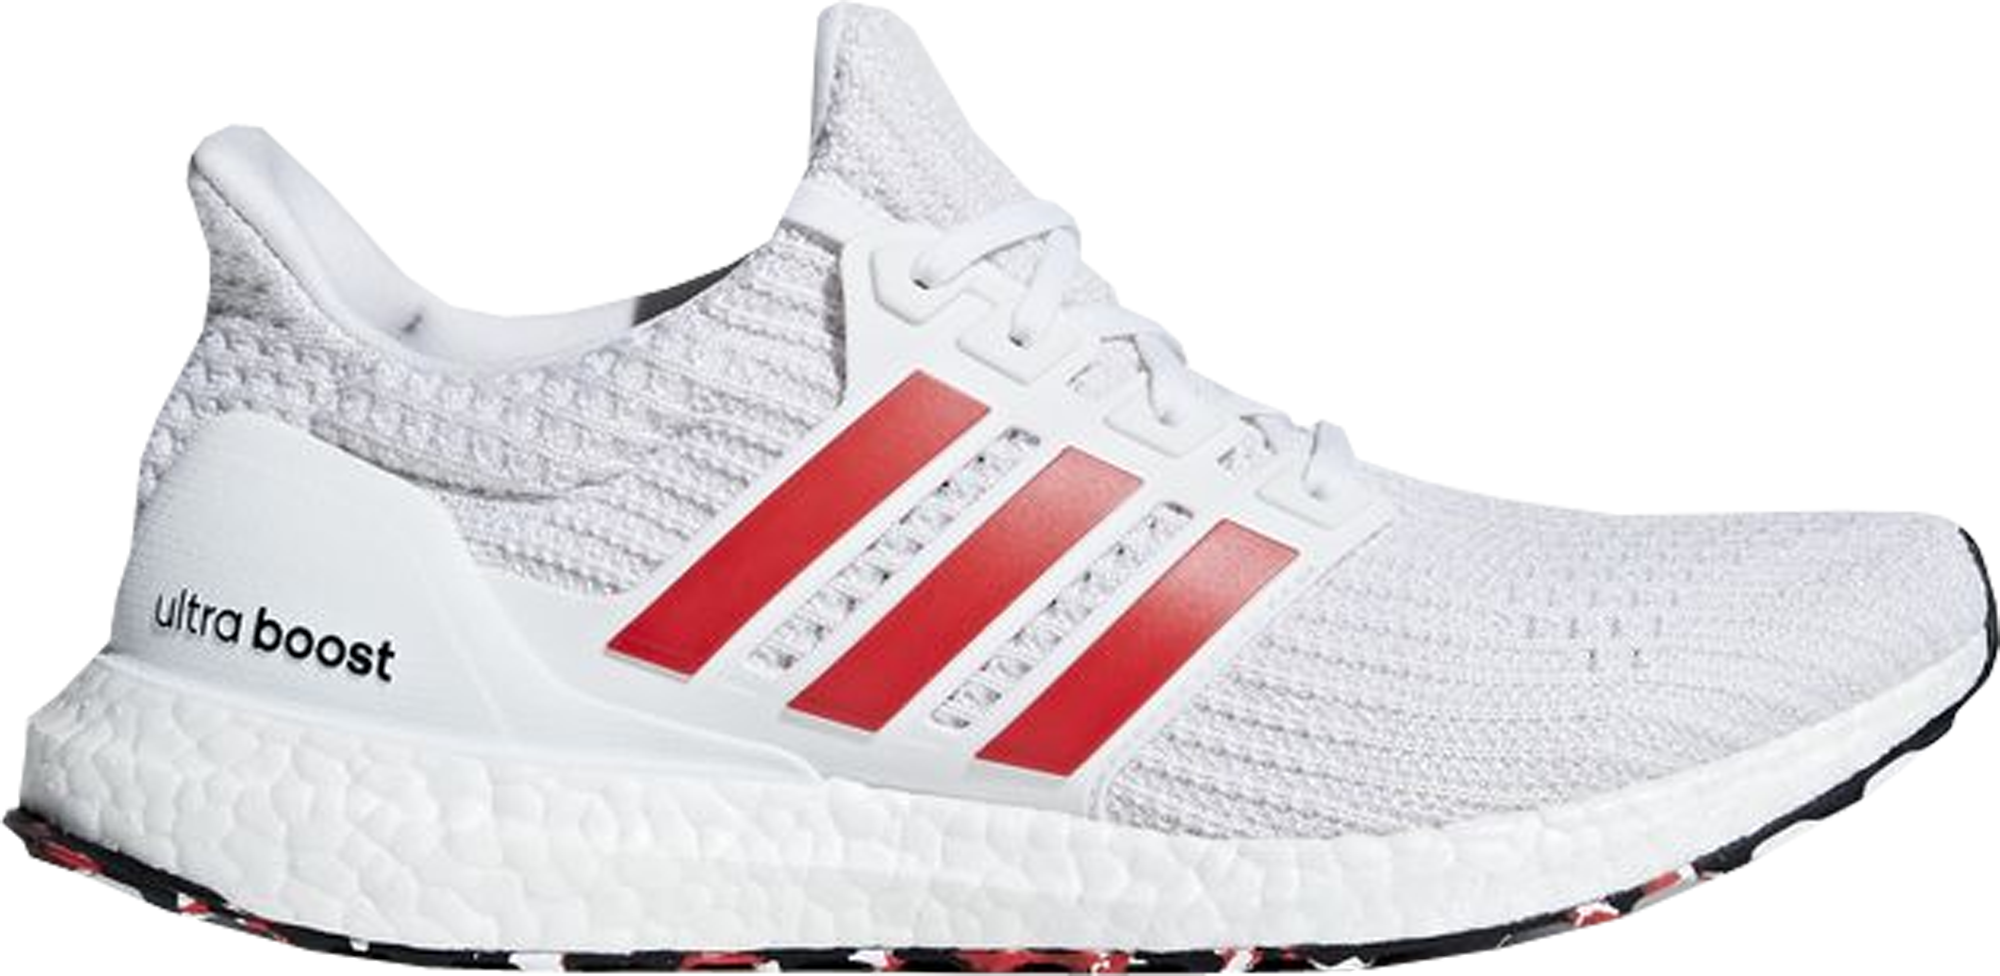 5d54edad7 ... usa hypeanalyzer adidas ultra boost 4.0 cloud white active red 2adc7  8254f